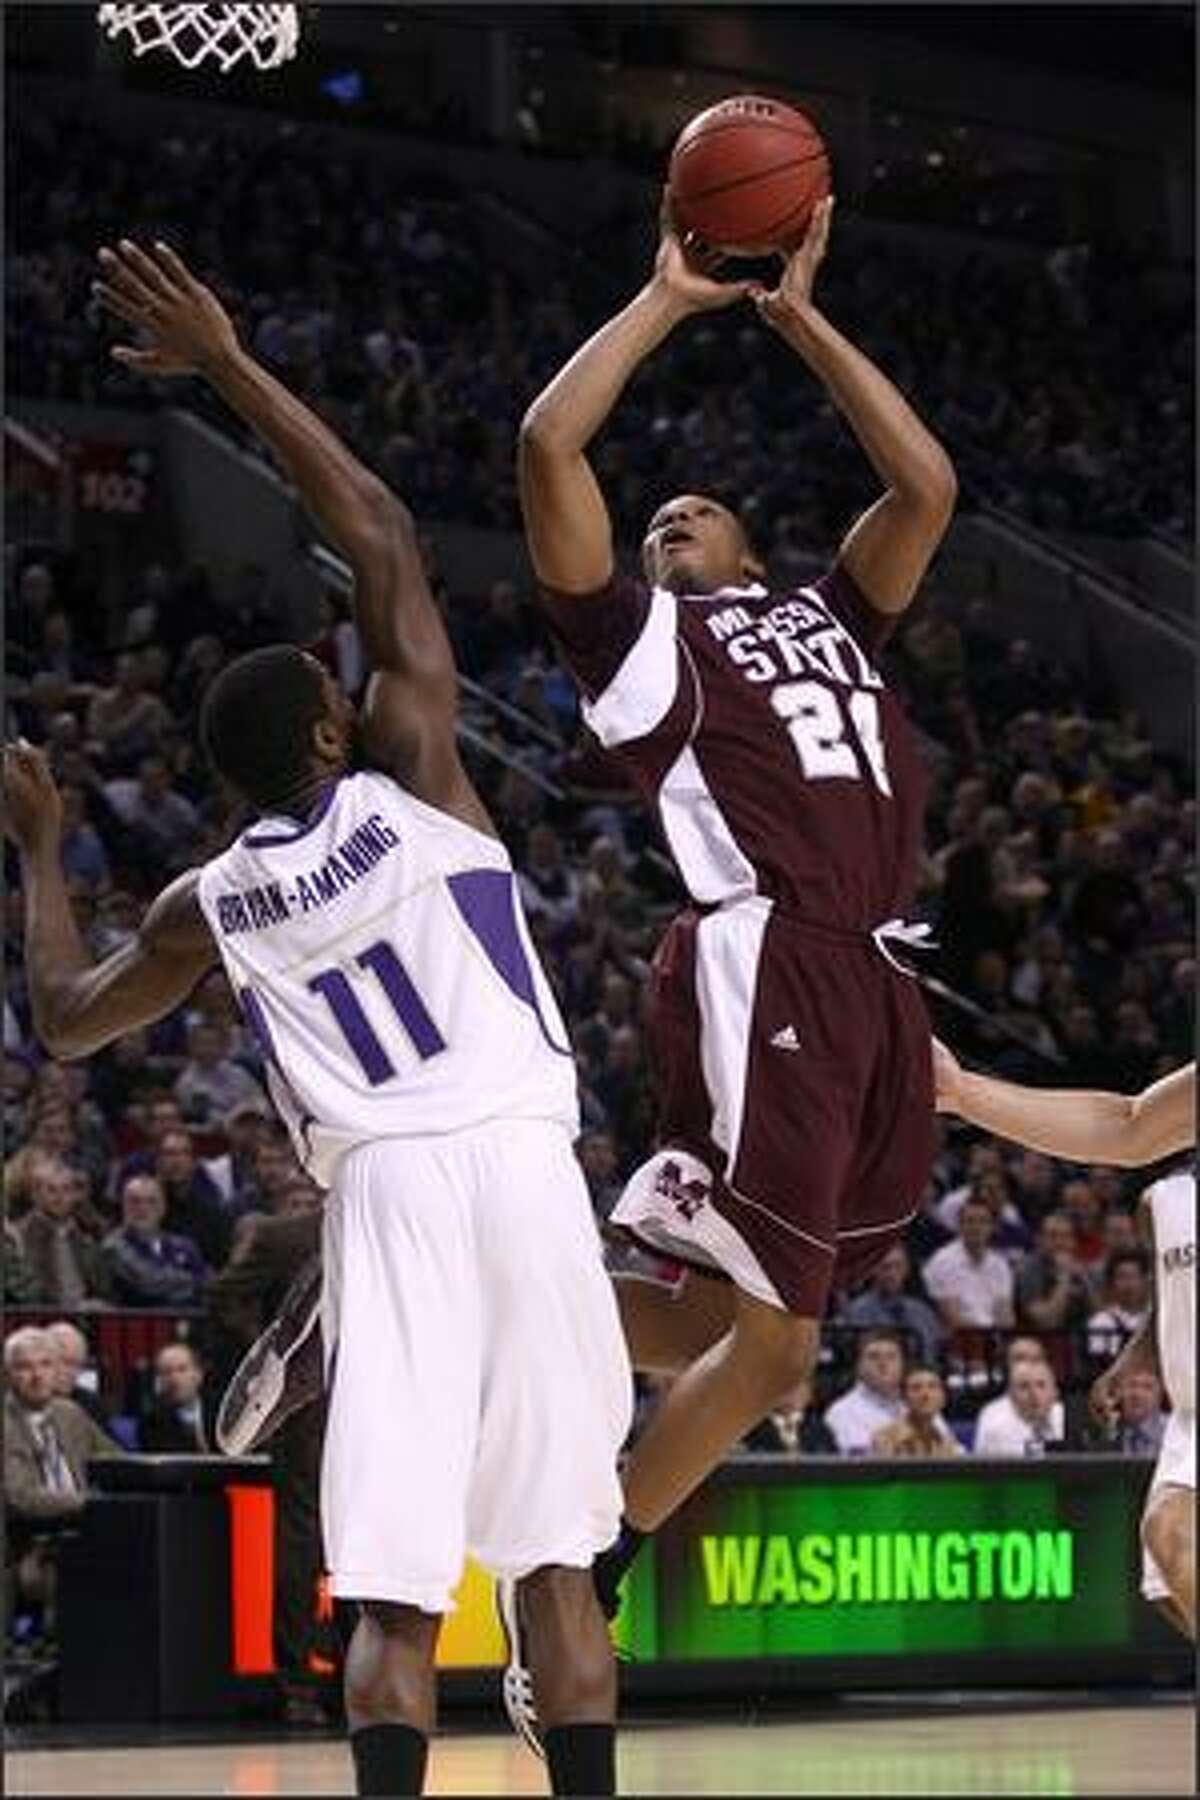 Kodi Augustus of Mississippi State goes up for a shot over Matthew Bryan-Amaning of Washington in the first half.